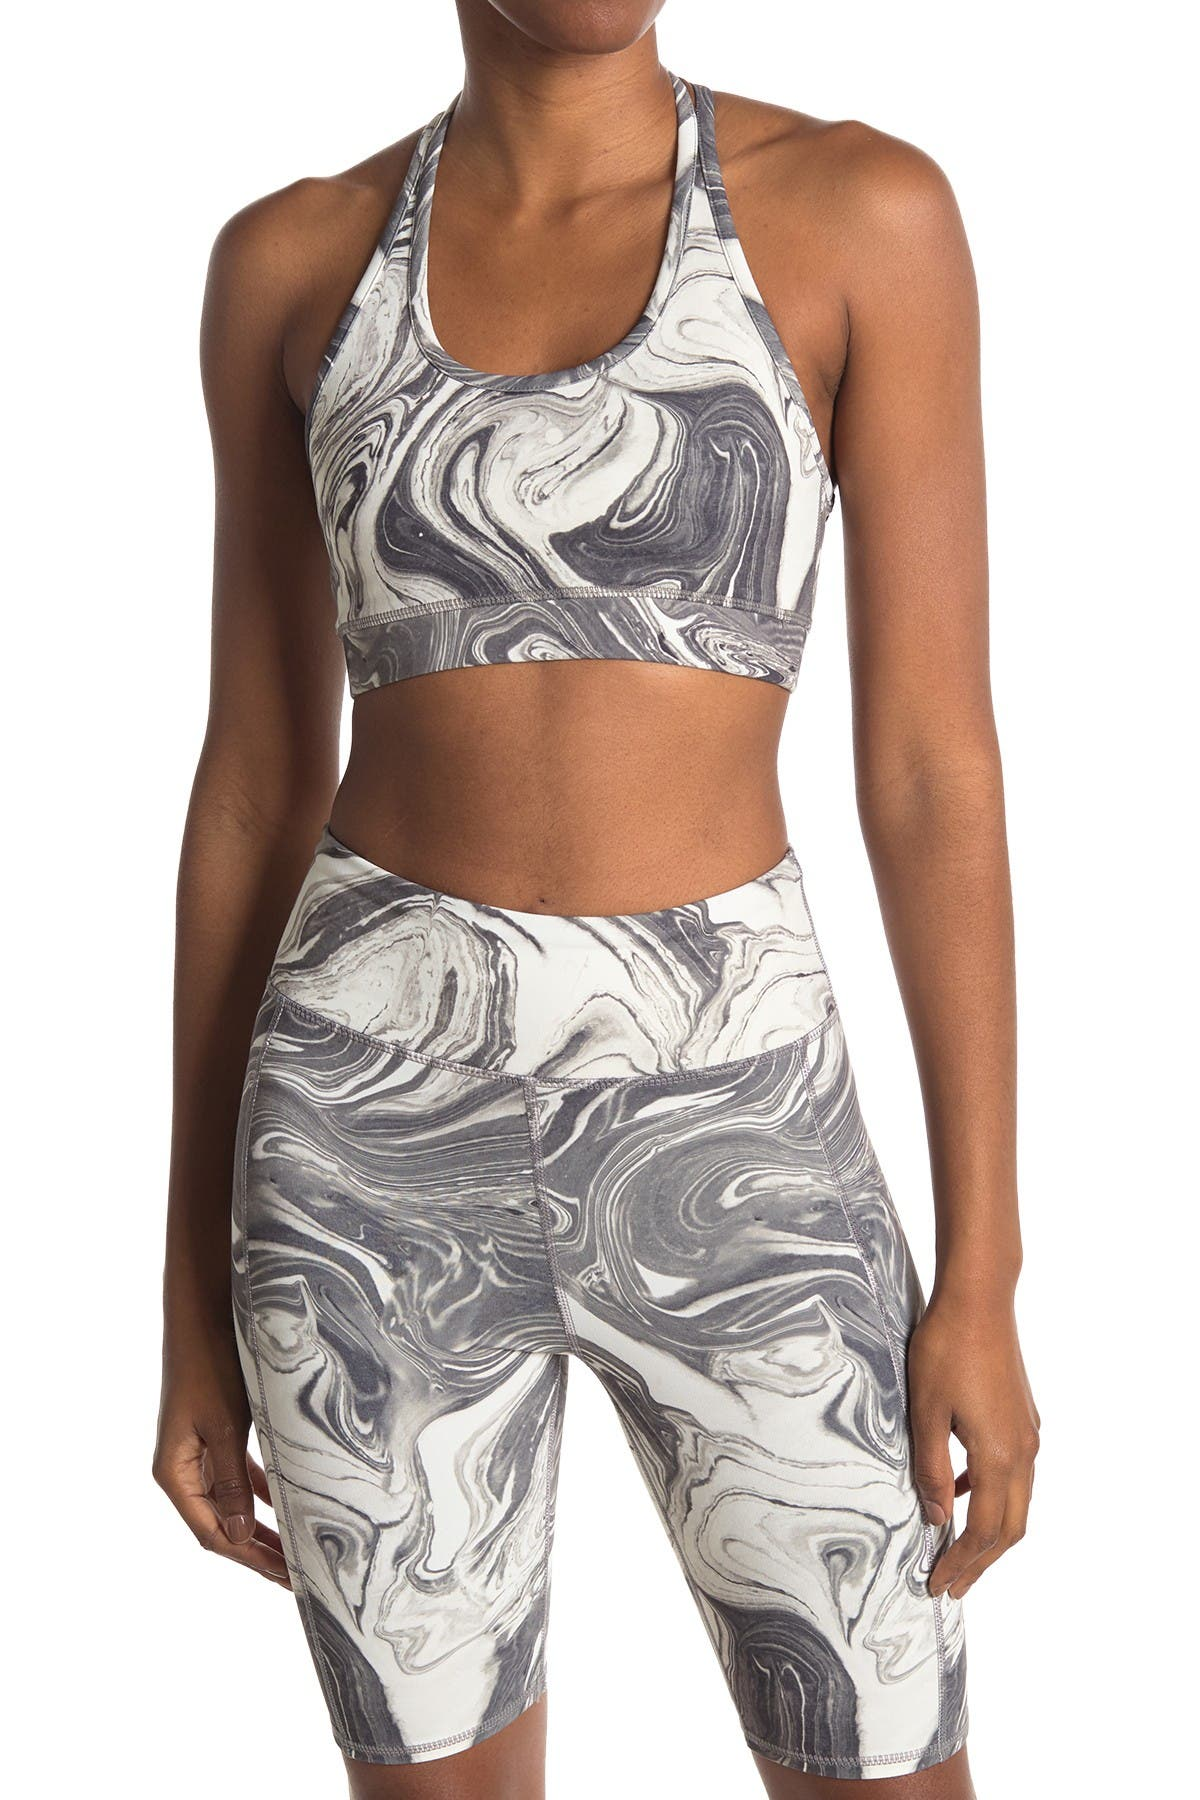 Image of Threads 4 Thought Zelma Marble Sports Bra